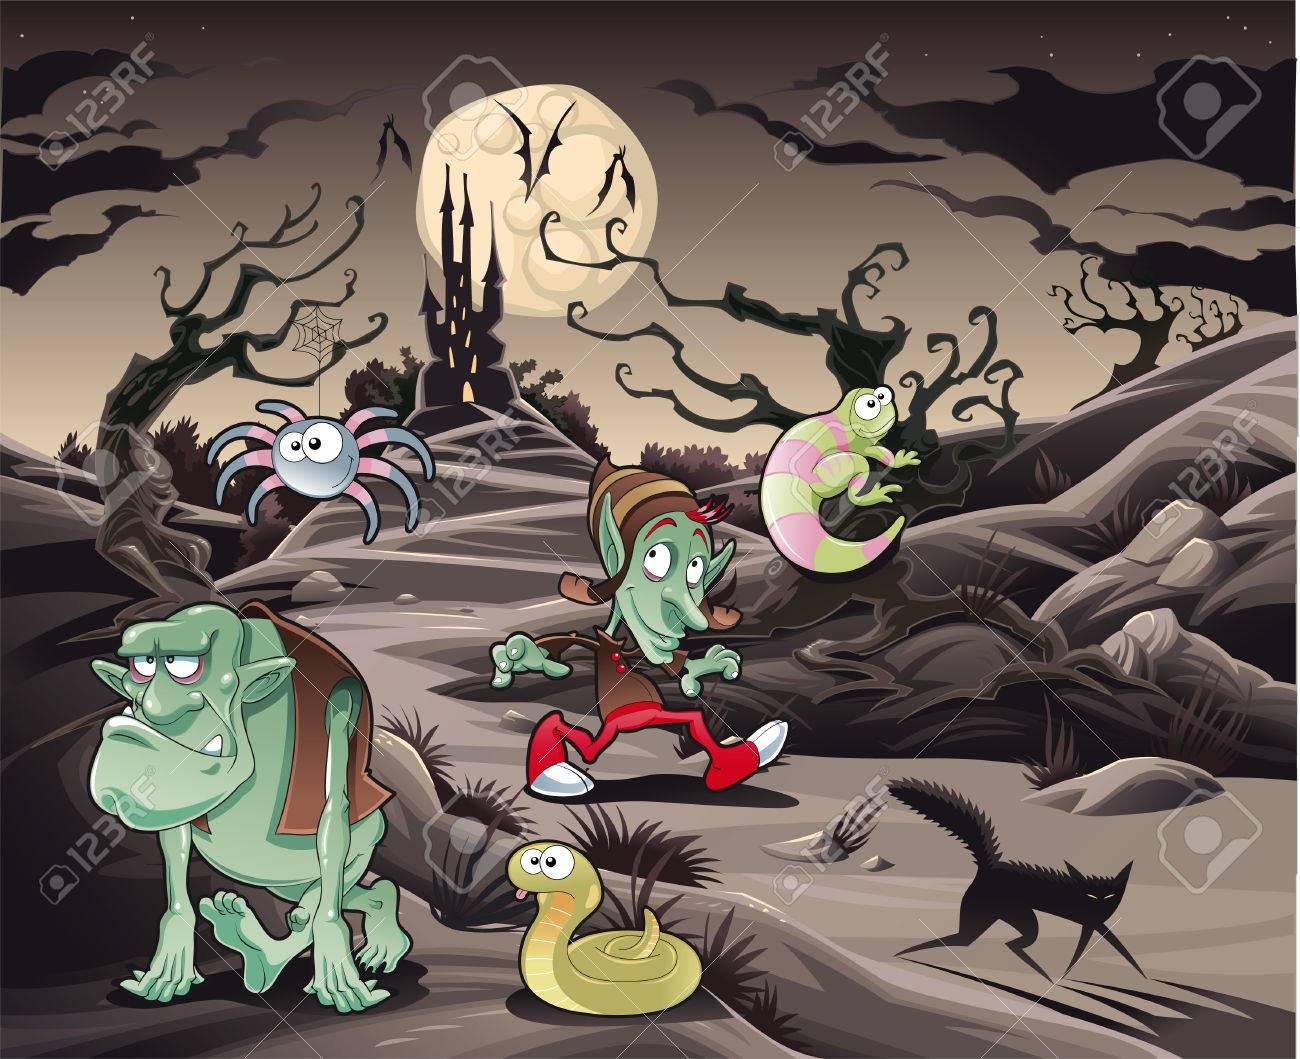 Horror landscape with characters. Cartoon and vector illustration. Stock Vector - 6113090